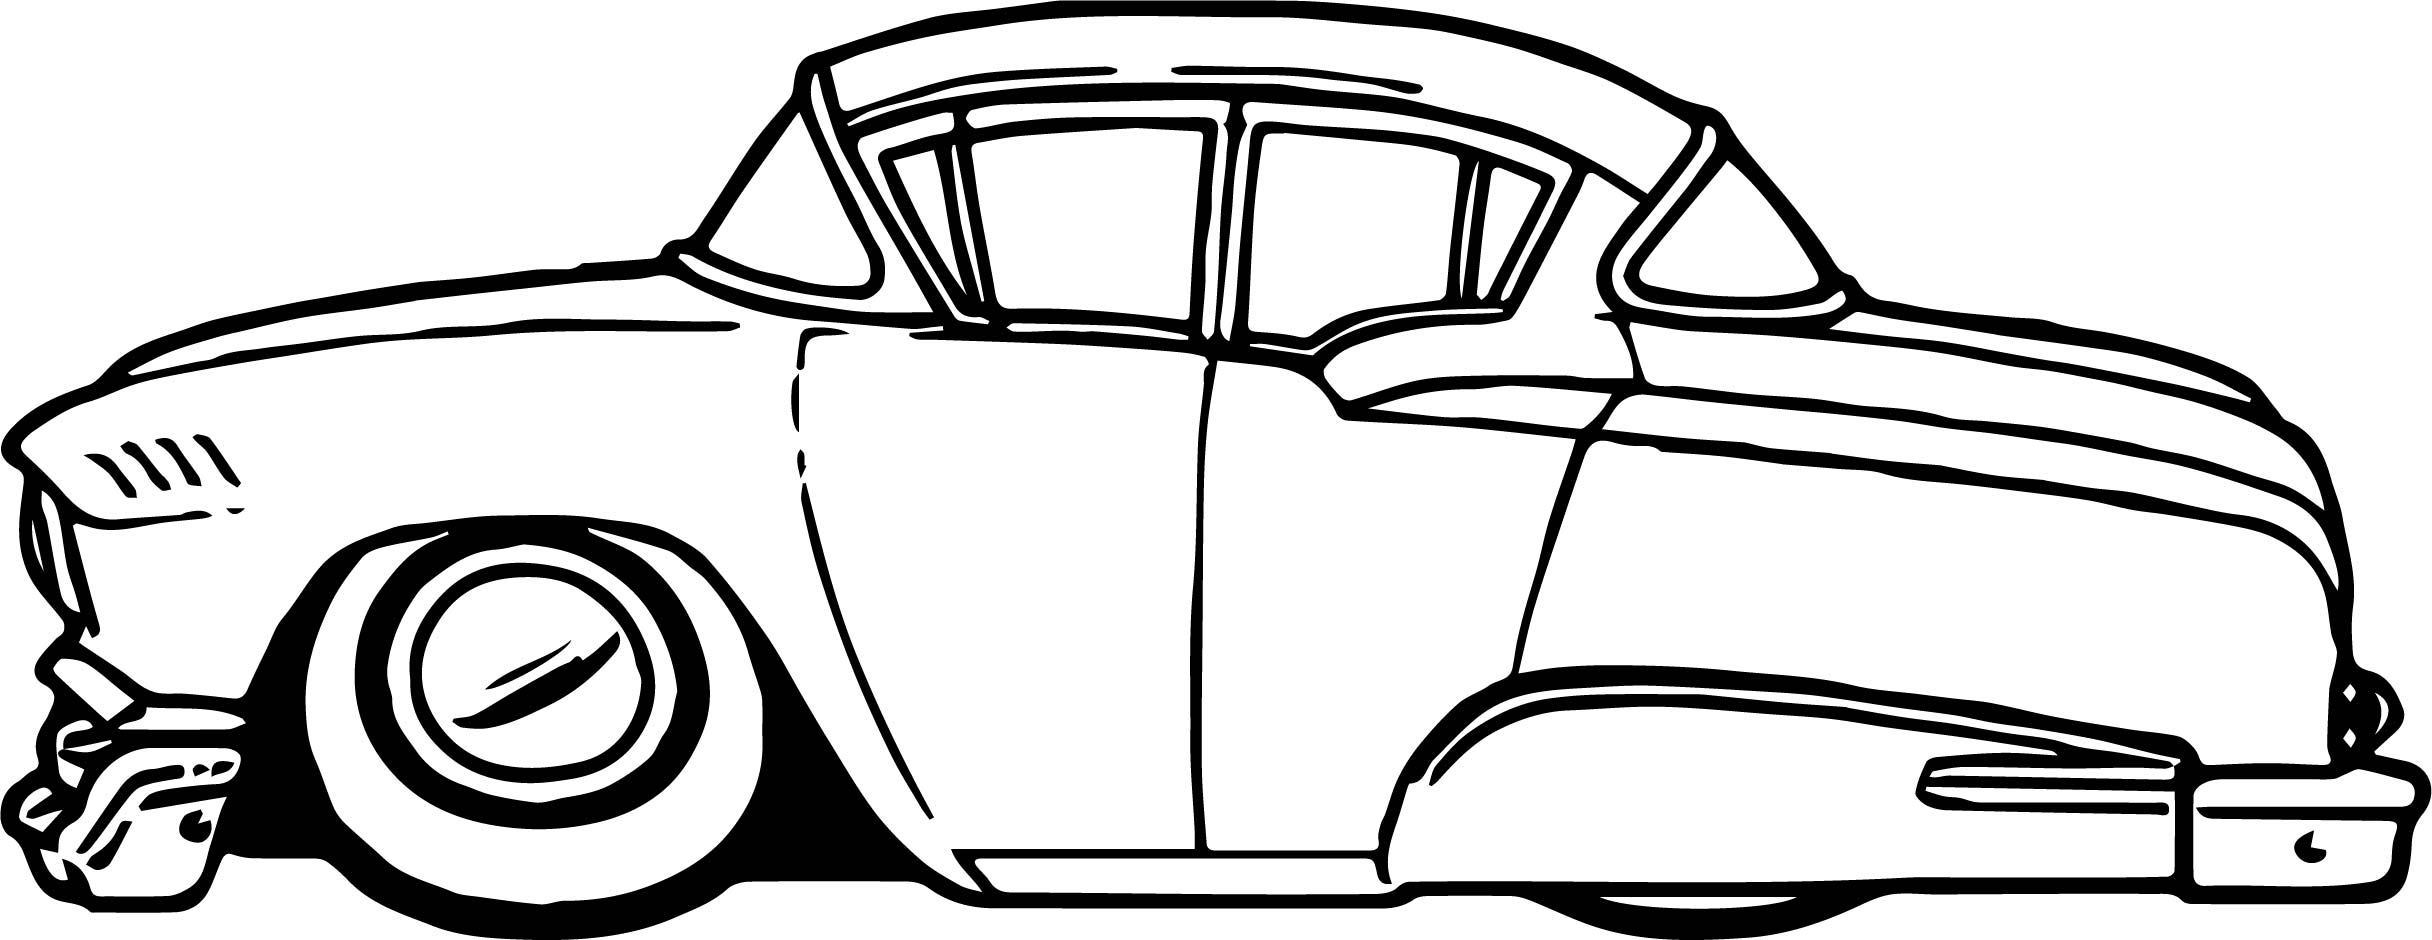 Coloring Pages Cars Cartoon : Antique car coloring book vintage